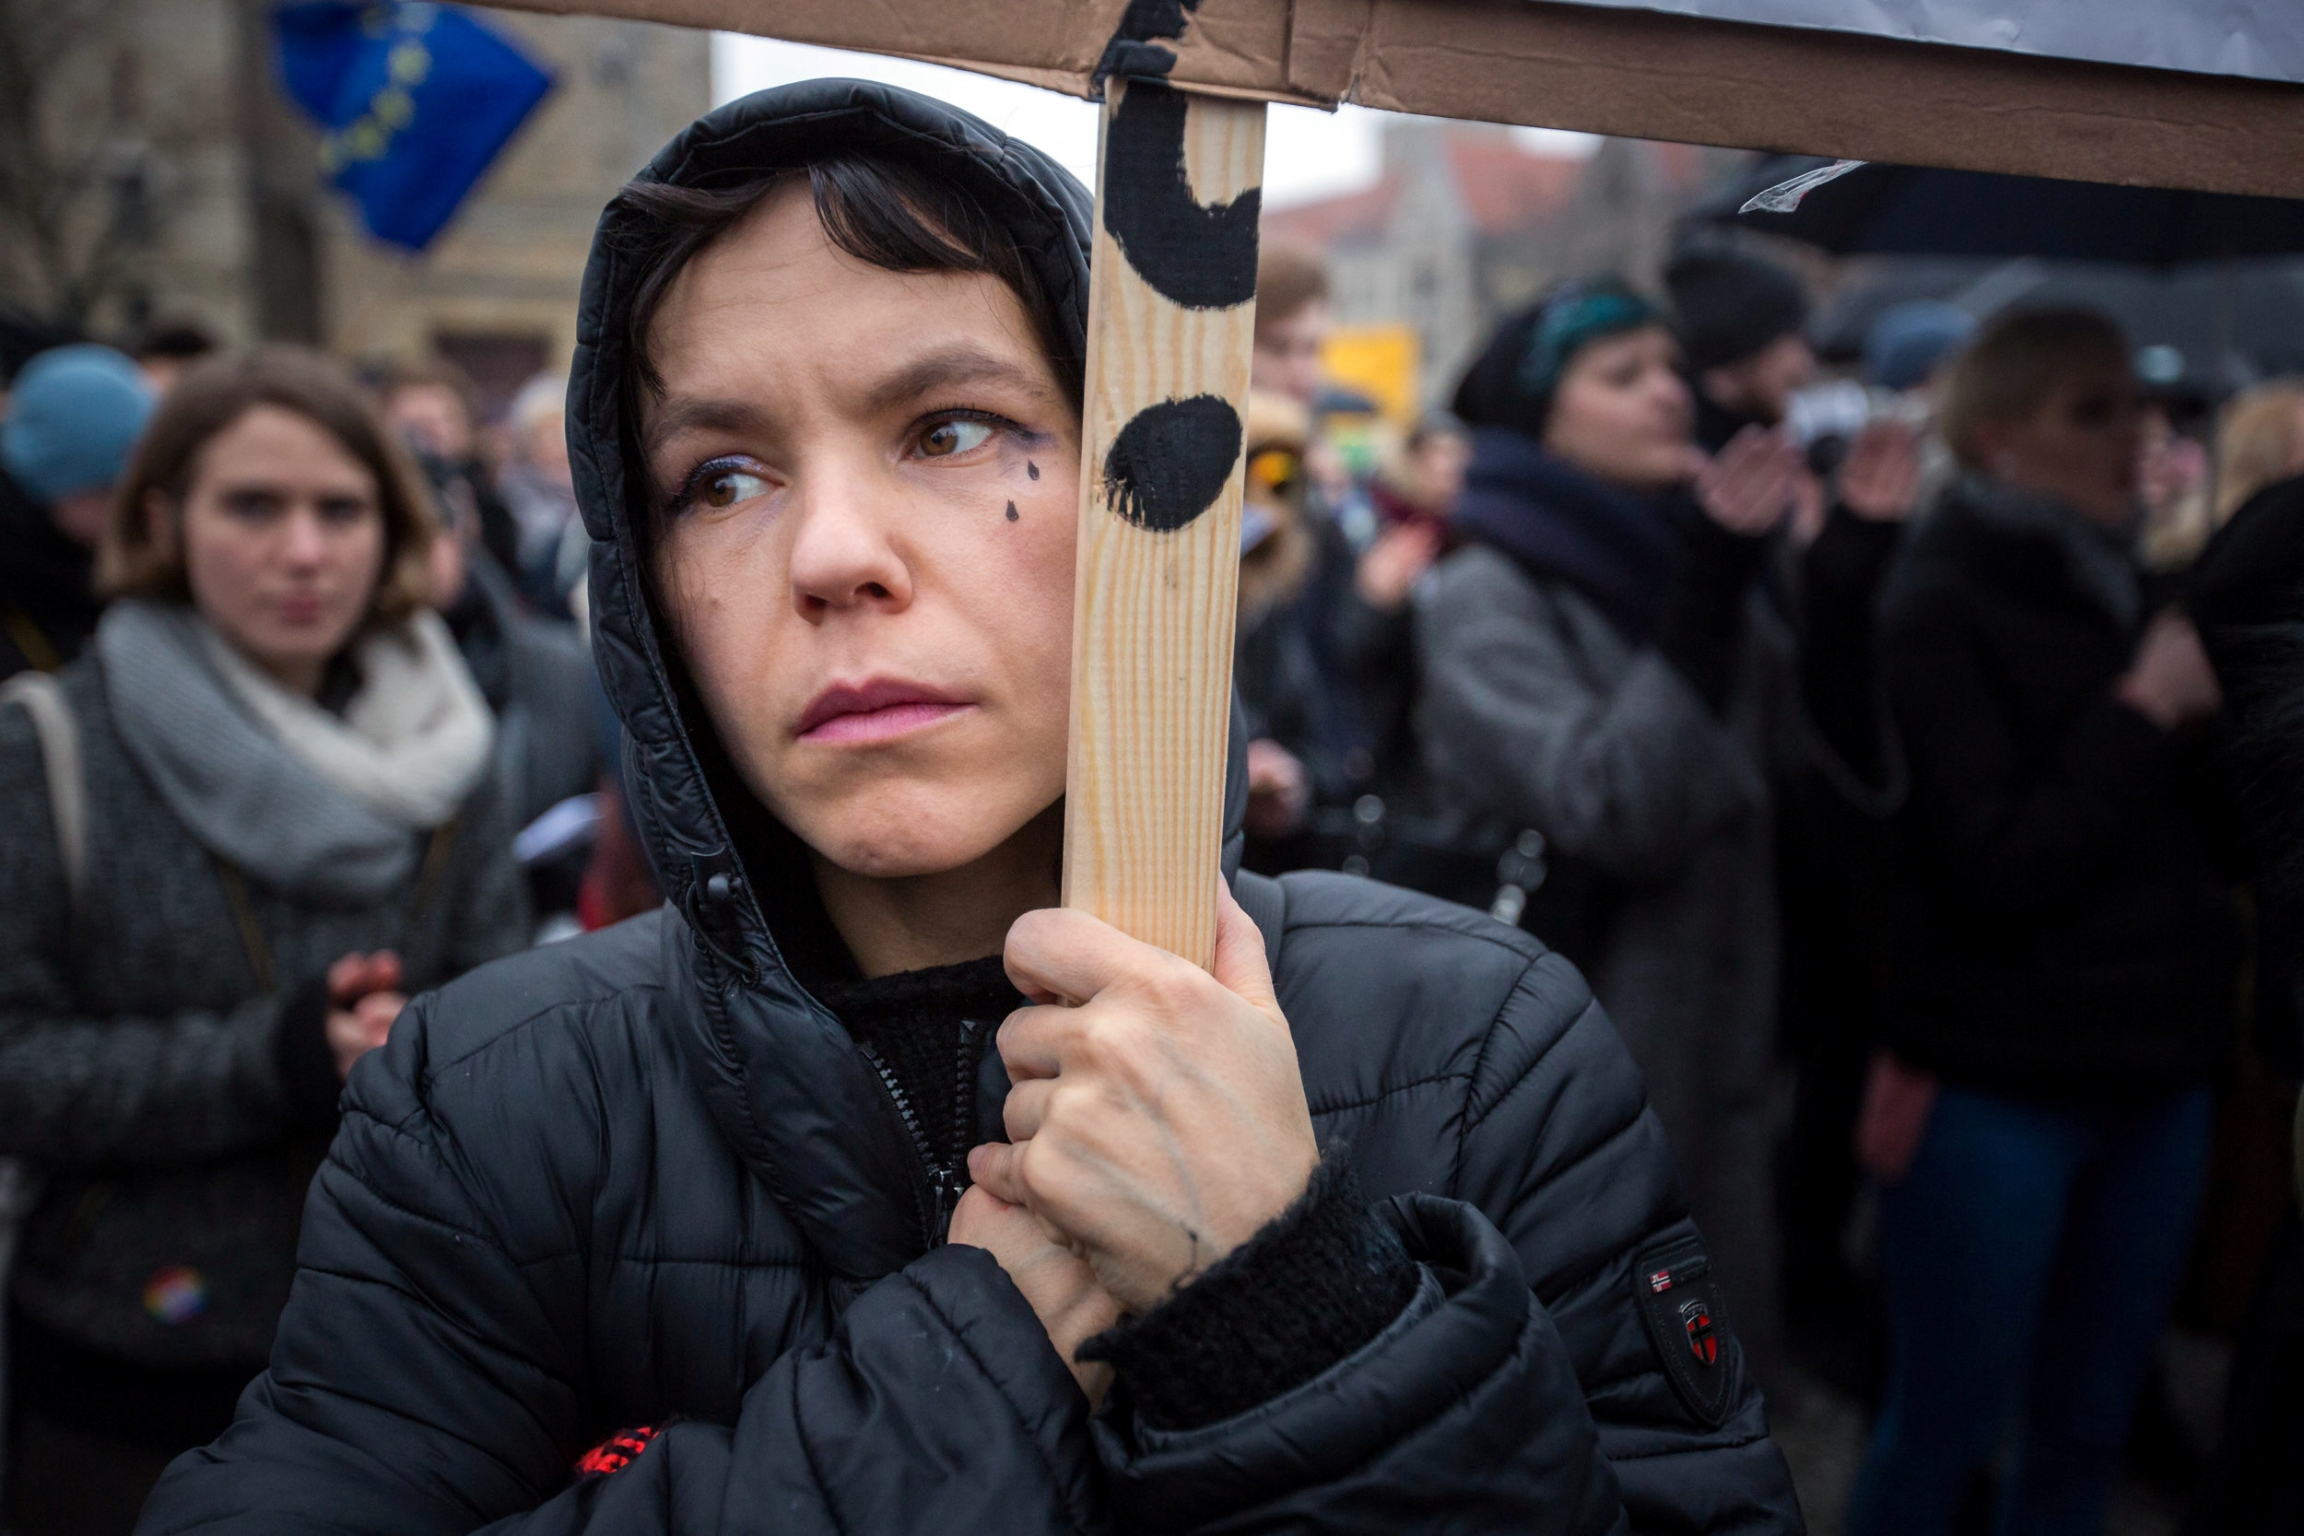 A woman protests against abortion restrictions carrying sign with tear drops painted on her face